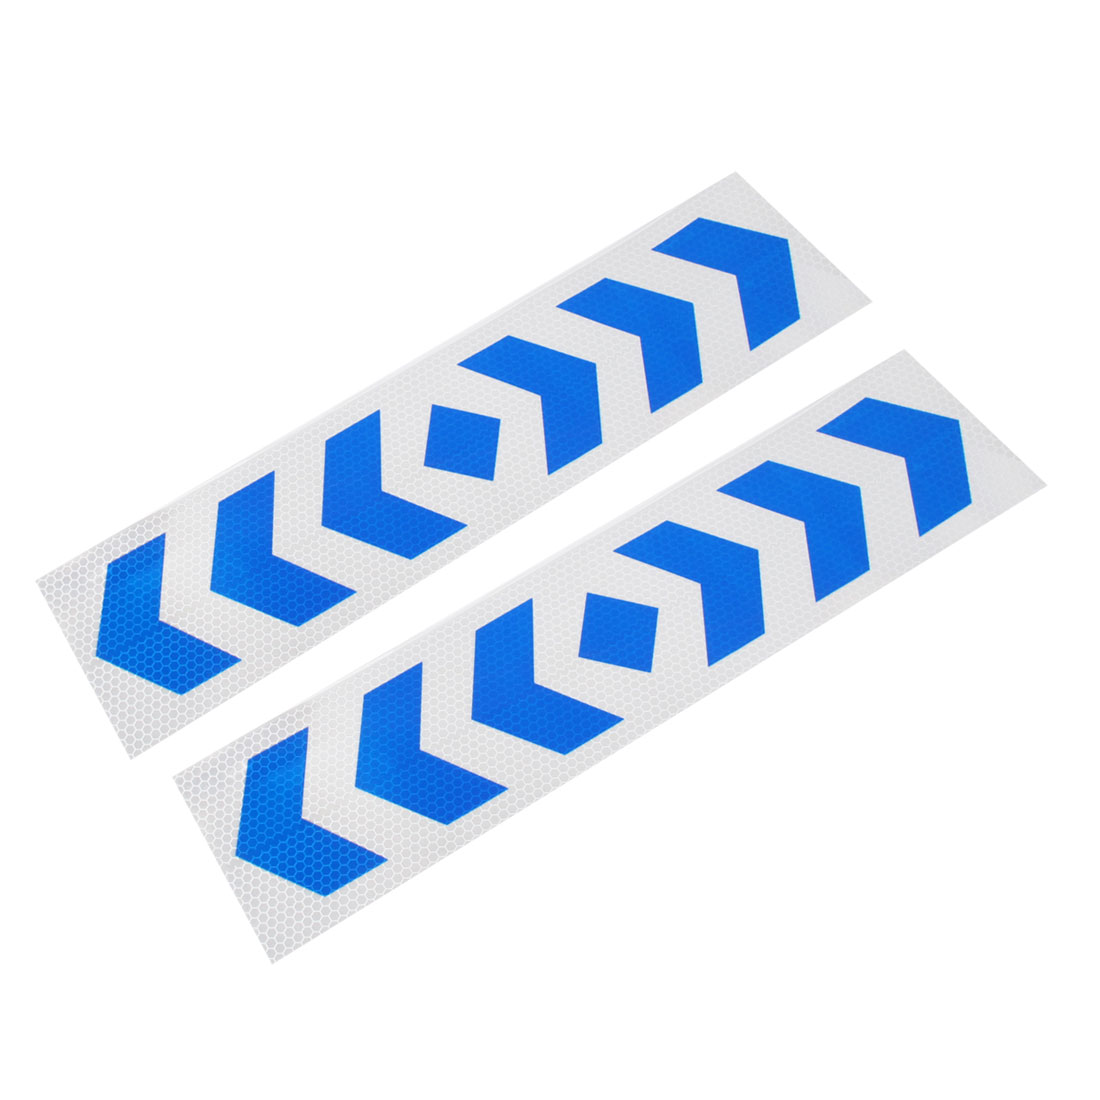 2 Pcs Car Arrow Pattern Reflective Blue Silver Tone Strips Stickers Decals